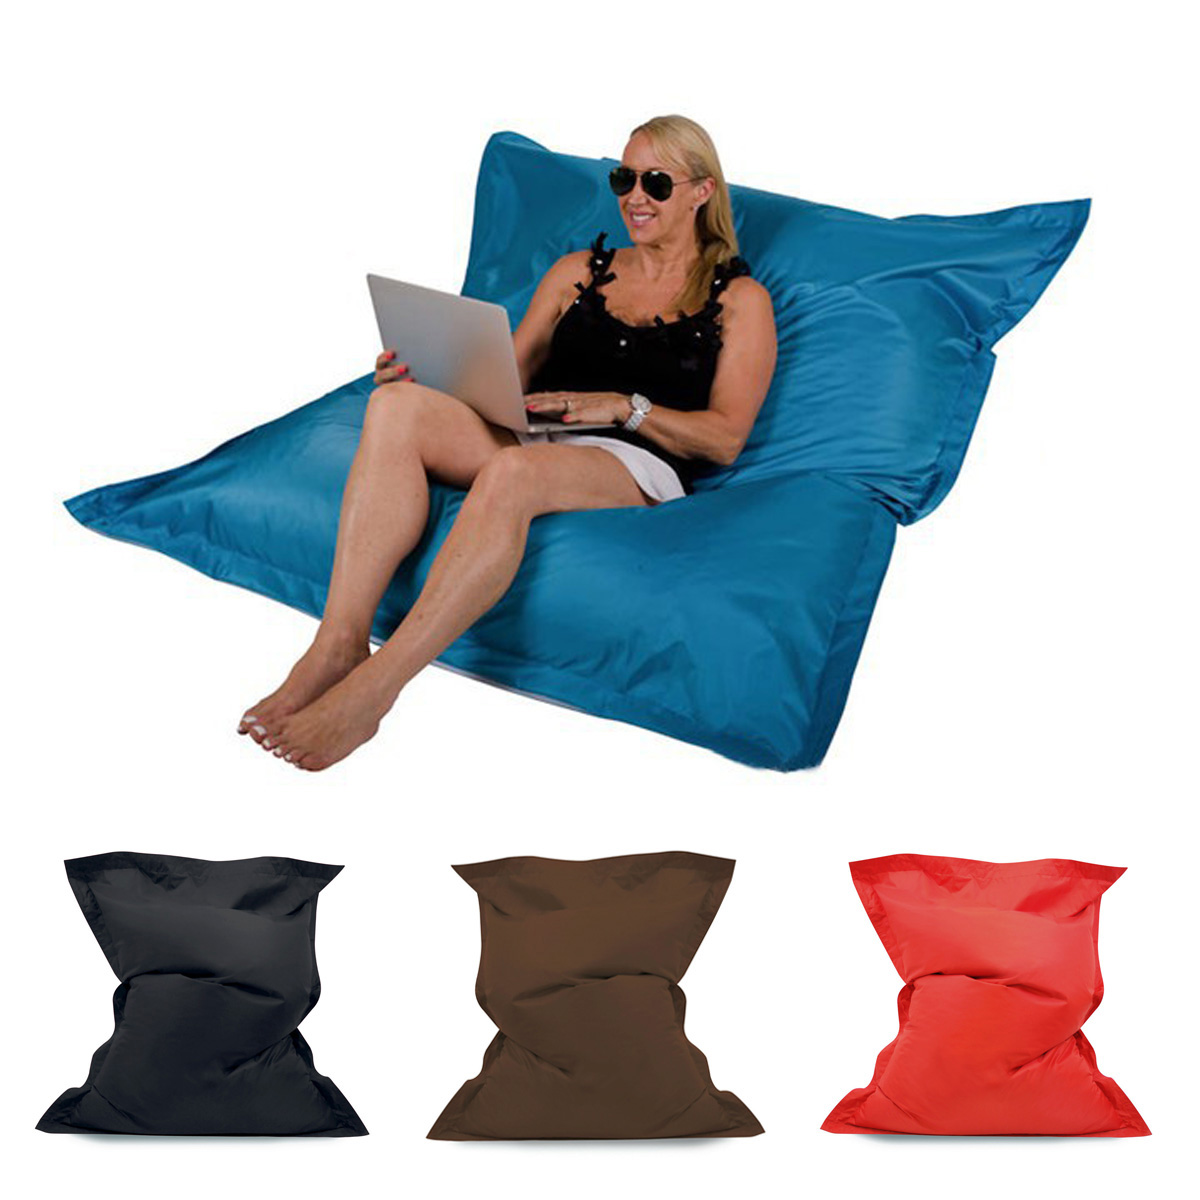 Beanbag Sofa Chair Magic Bag Seat Cases Zac Comfort Bean Bag Bed Cover Without Filling Waterproof Indoor Beanbag Lounge ChairBeanbag Sofa Chair Magic Bag Seat Cases Zac Comfort Bean Bag Bed Cover Without Filling Waterproof Indoor Beanbag Lounge Chair